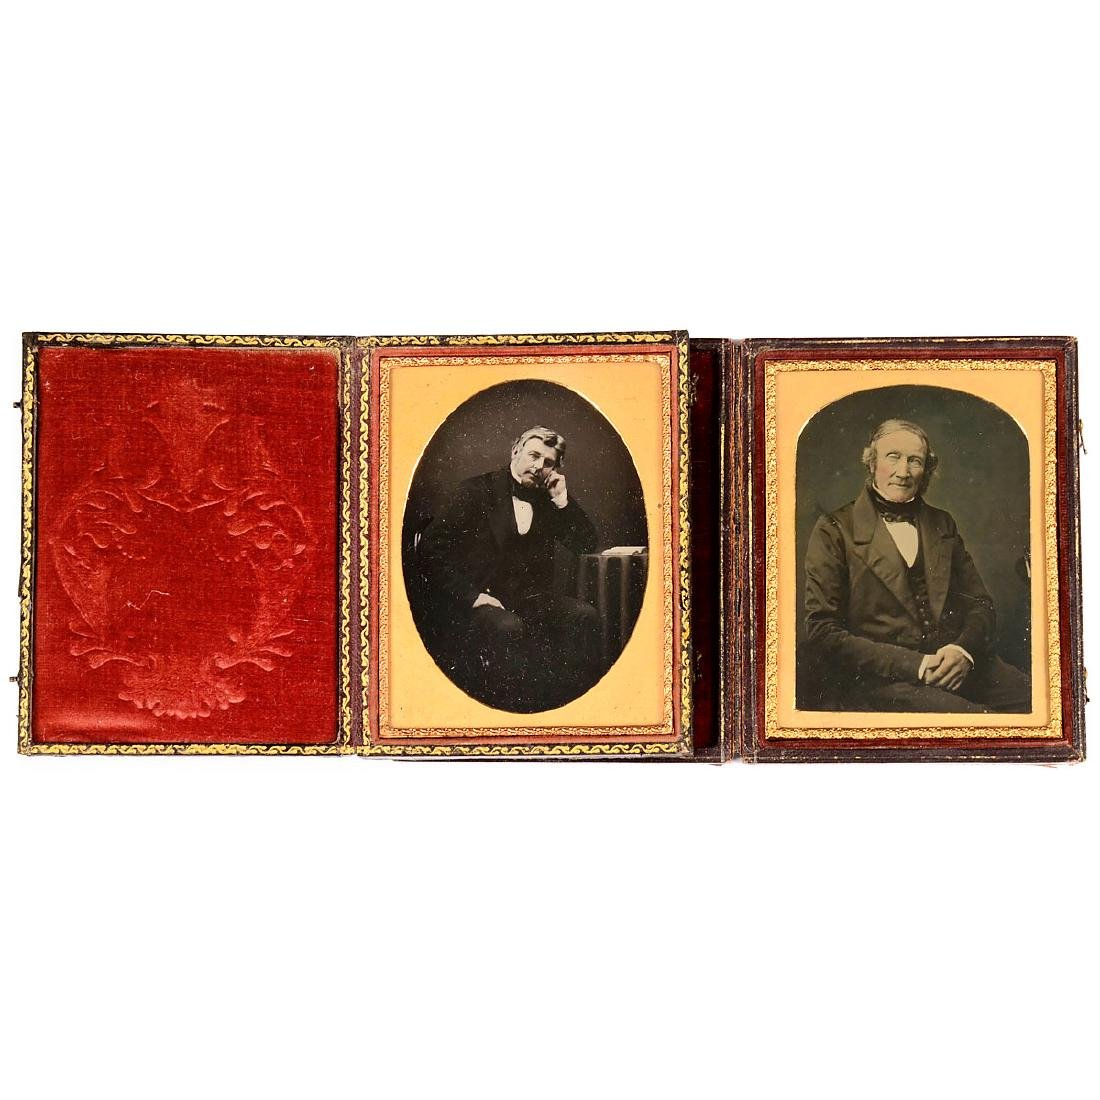 2 Ambrotypes (Hand-Colored), c. 1850–60